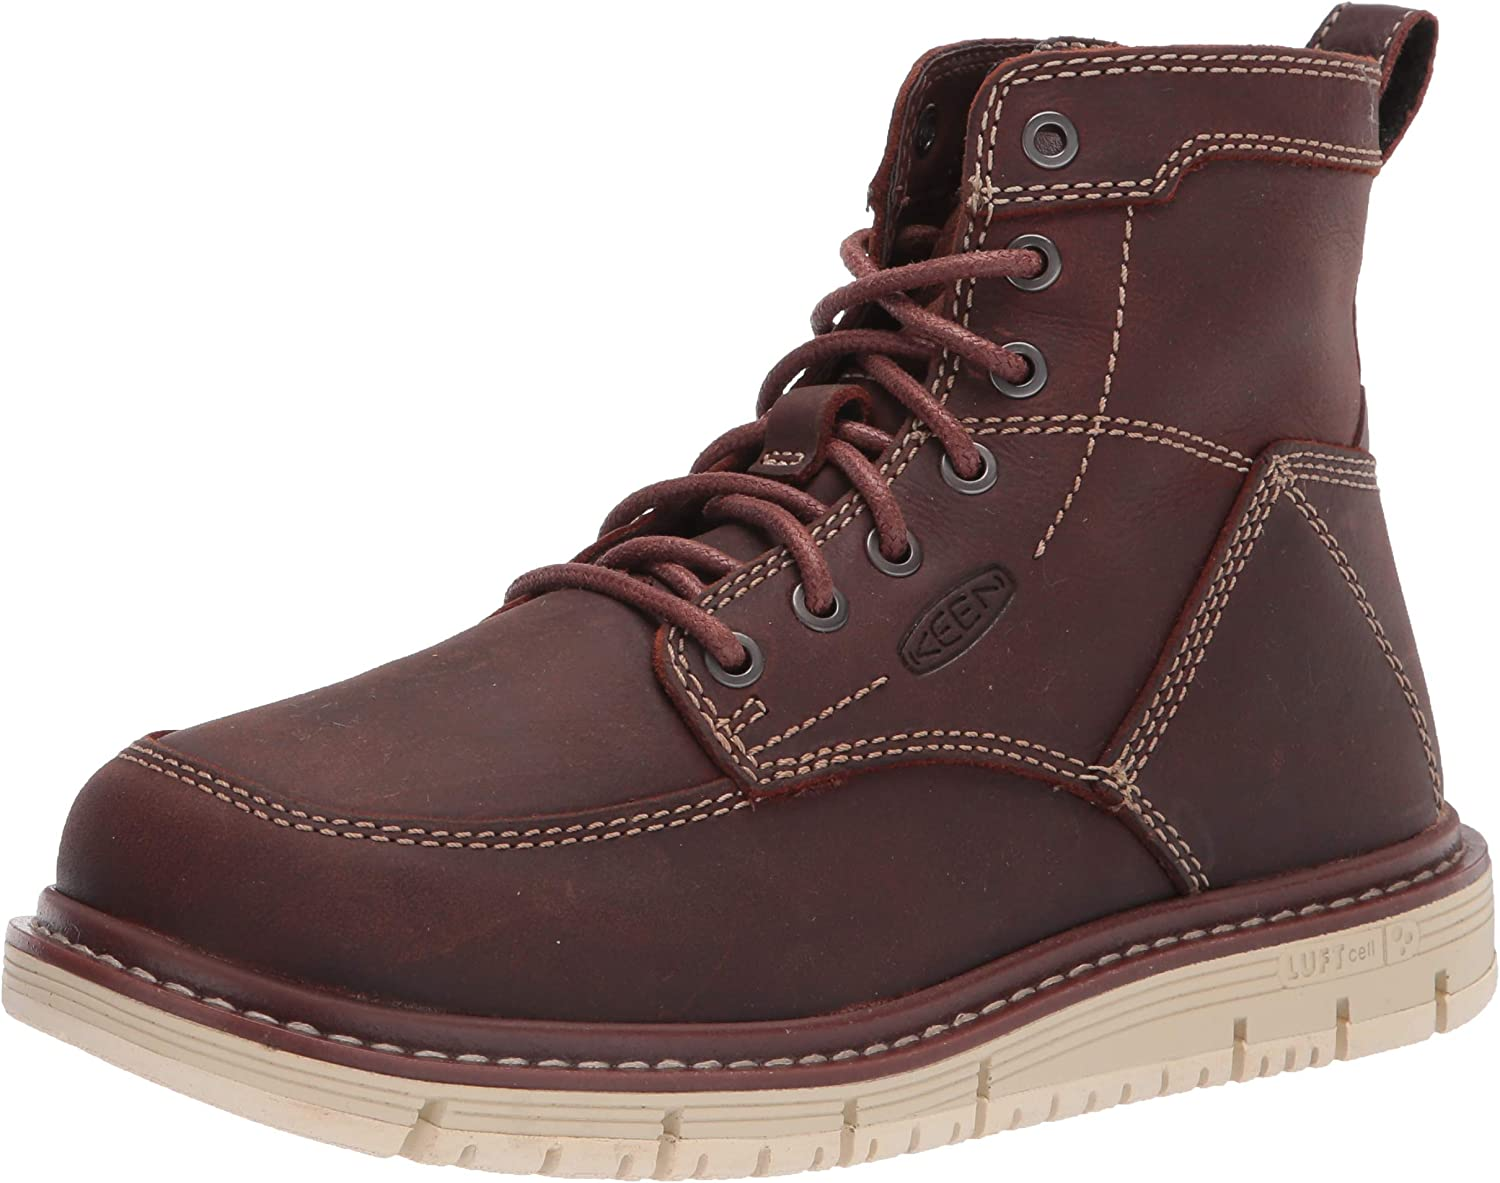 """KEEN Utility Women's San Jose 6"""" Soft Toe Wedge Work Boots Construction : Clothing, Shoes & Jewelry"""